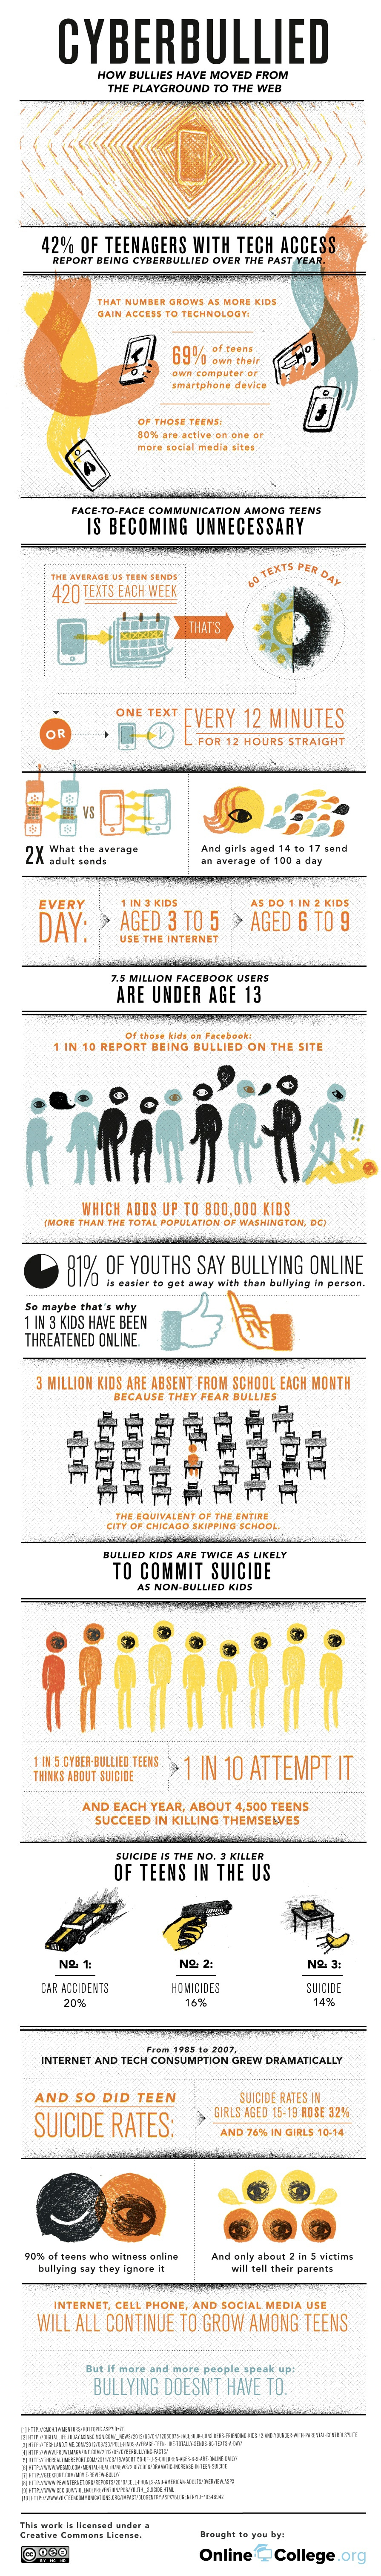 Cyberbullying: Don't Let Bullies Ruin Your Online Life [Infographic]